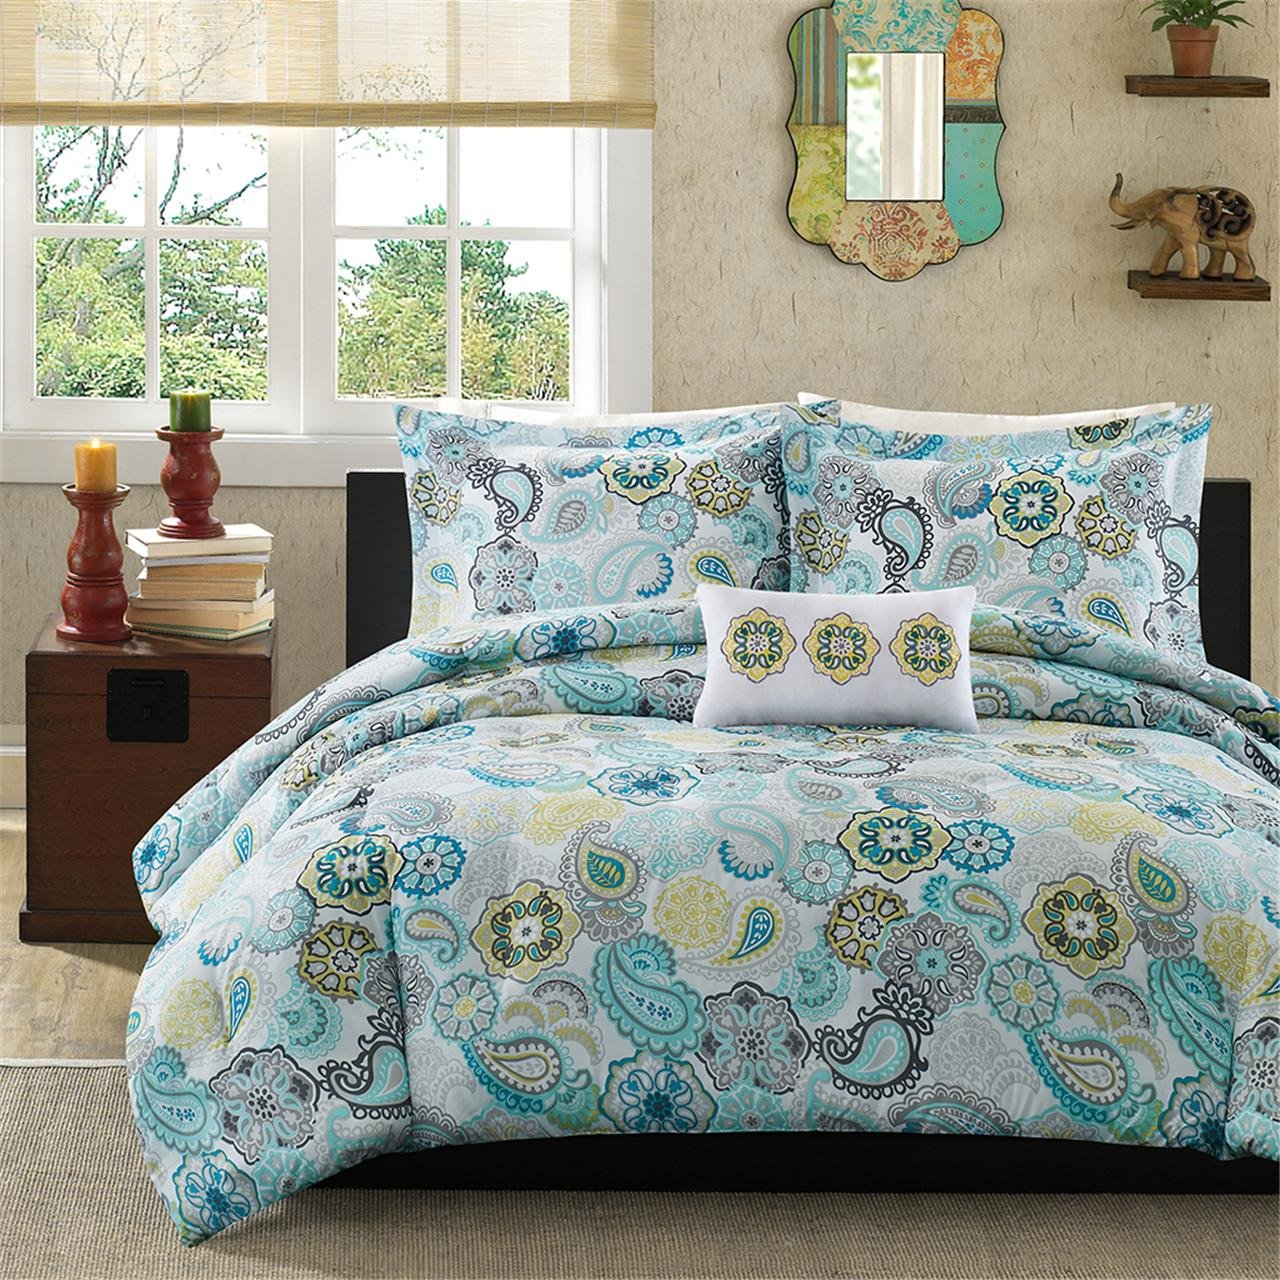 Queen 4 Piece Paisley Comforter Set Blue Flowers Floral